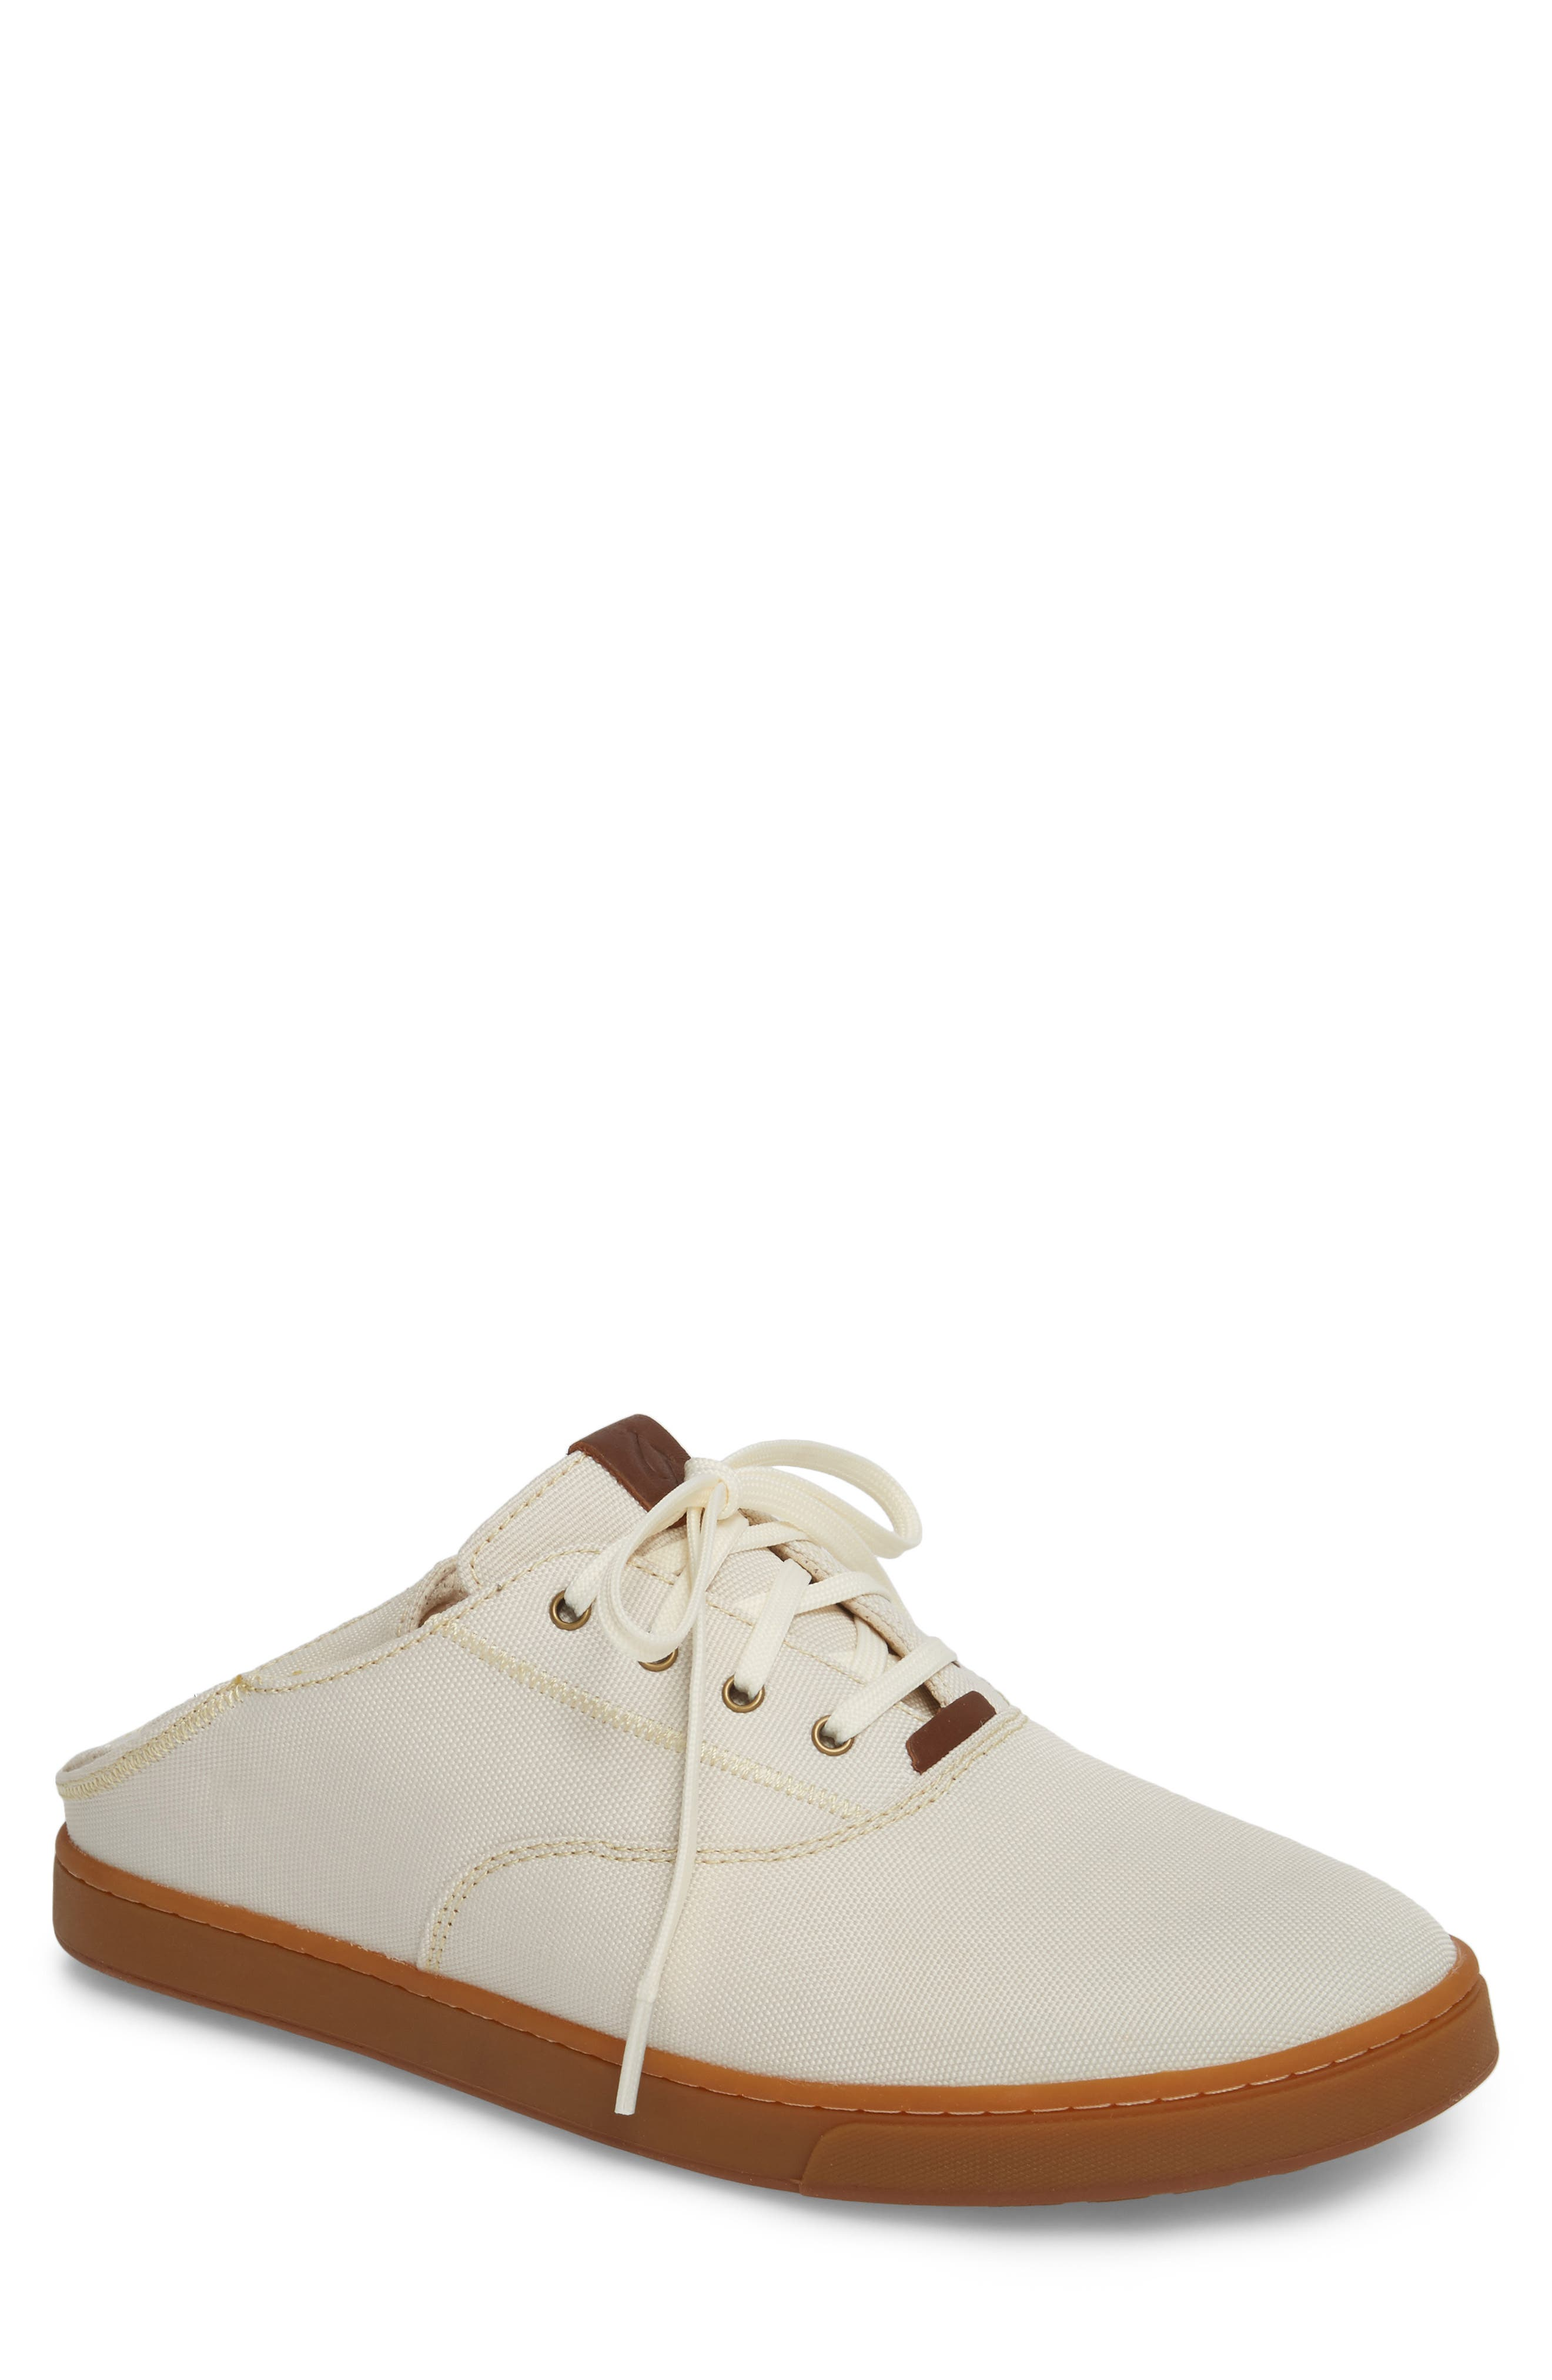 Kahu Collapsible Lace-Up Sneaker,                         Main,                         color, OFF WHITE/ TOFFEE